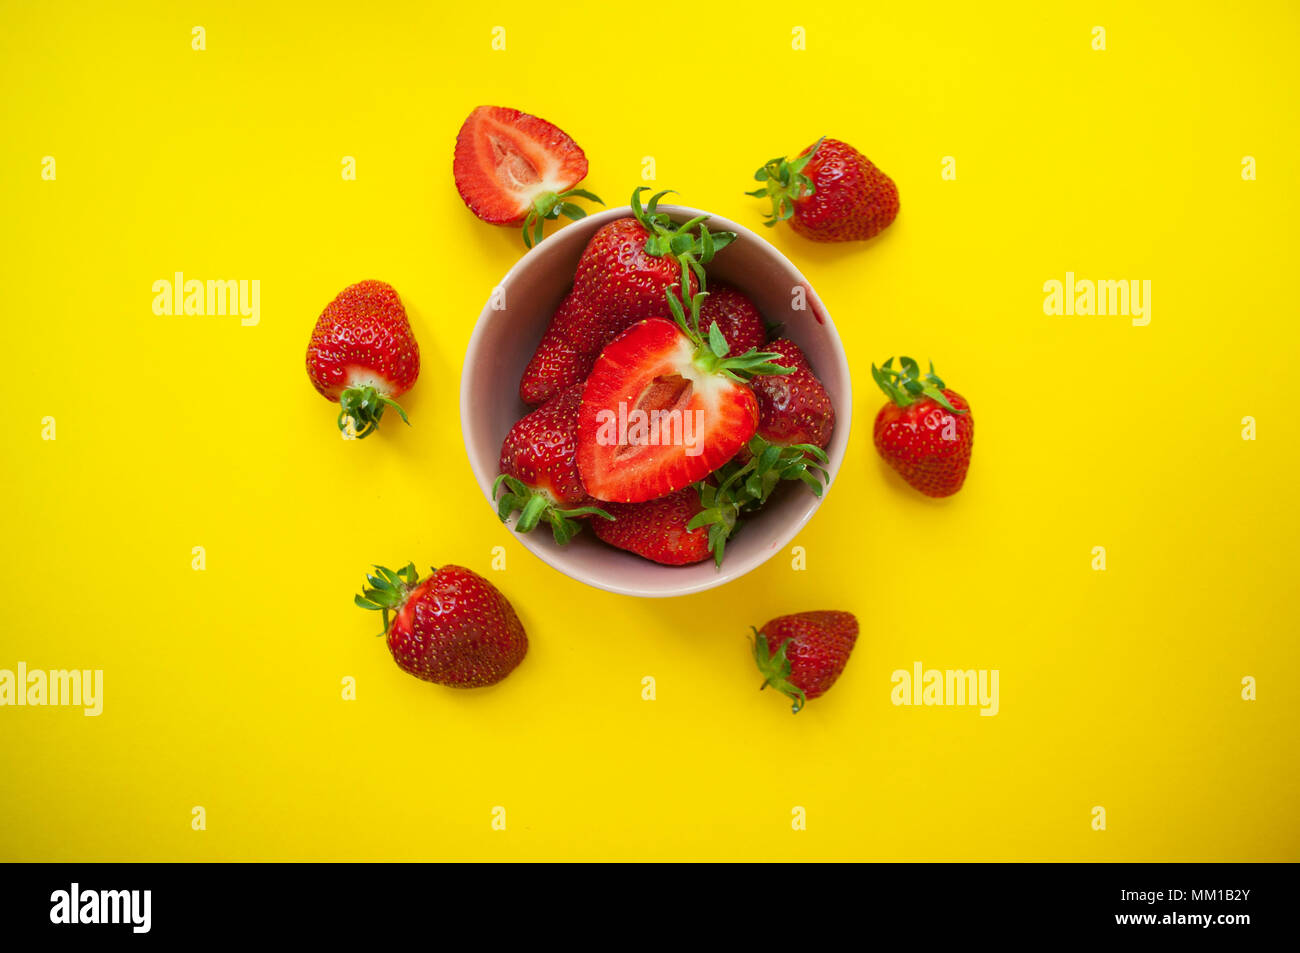 Beautiful fresh juicy strawberries in a pink bowl on bright yellow background. - Stock Image